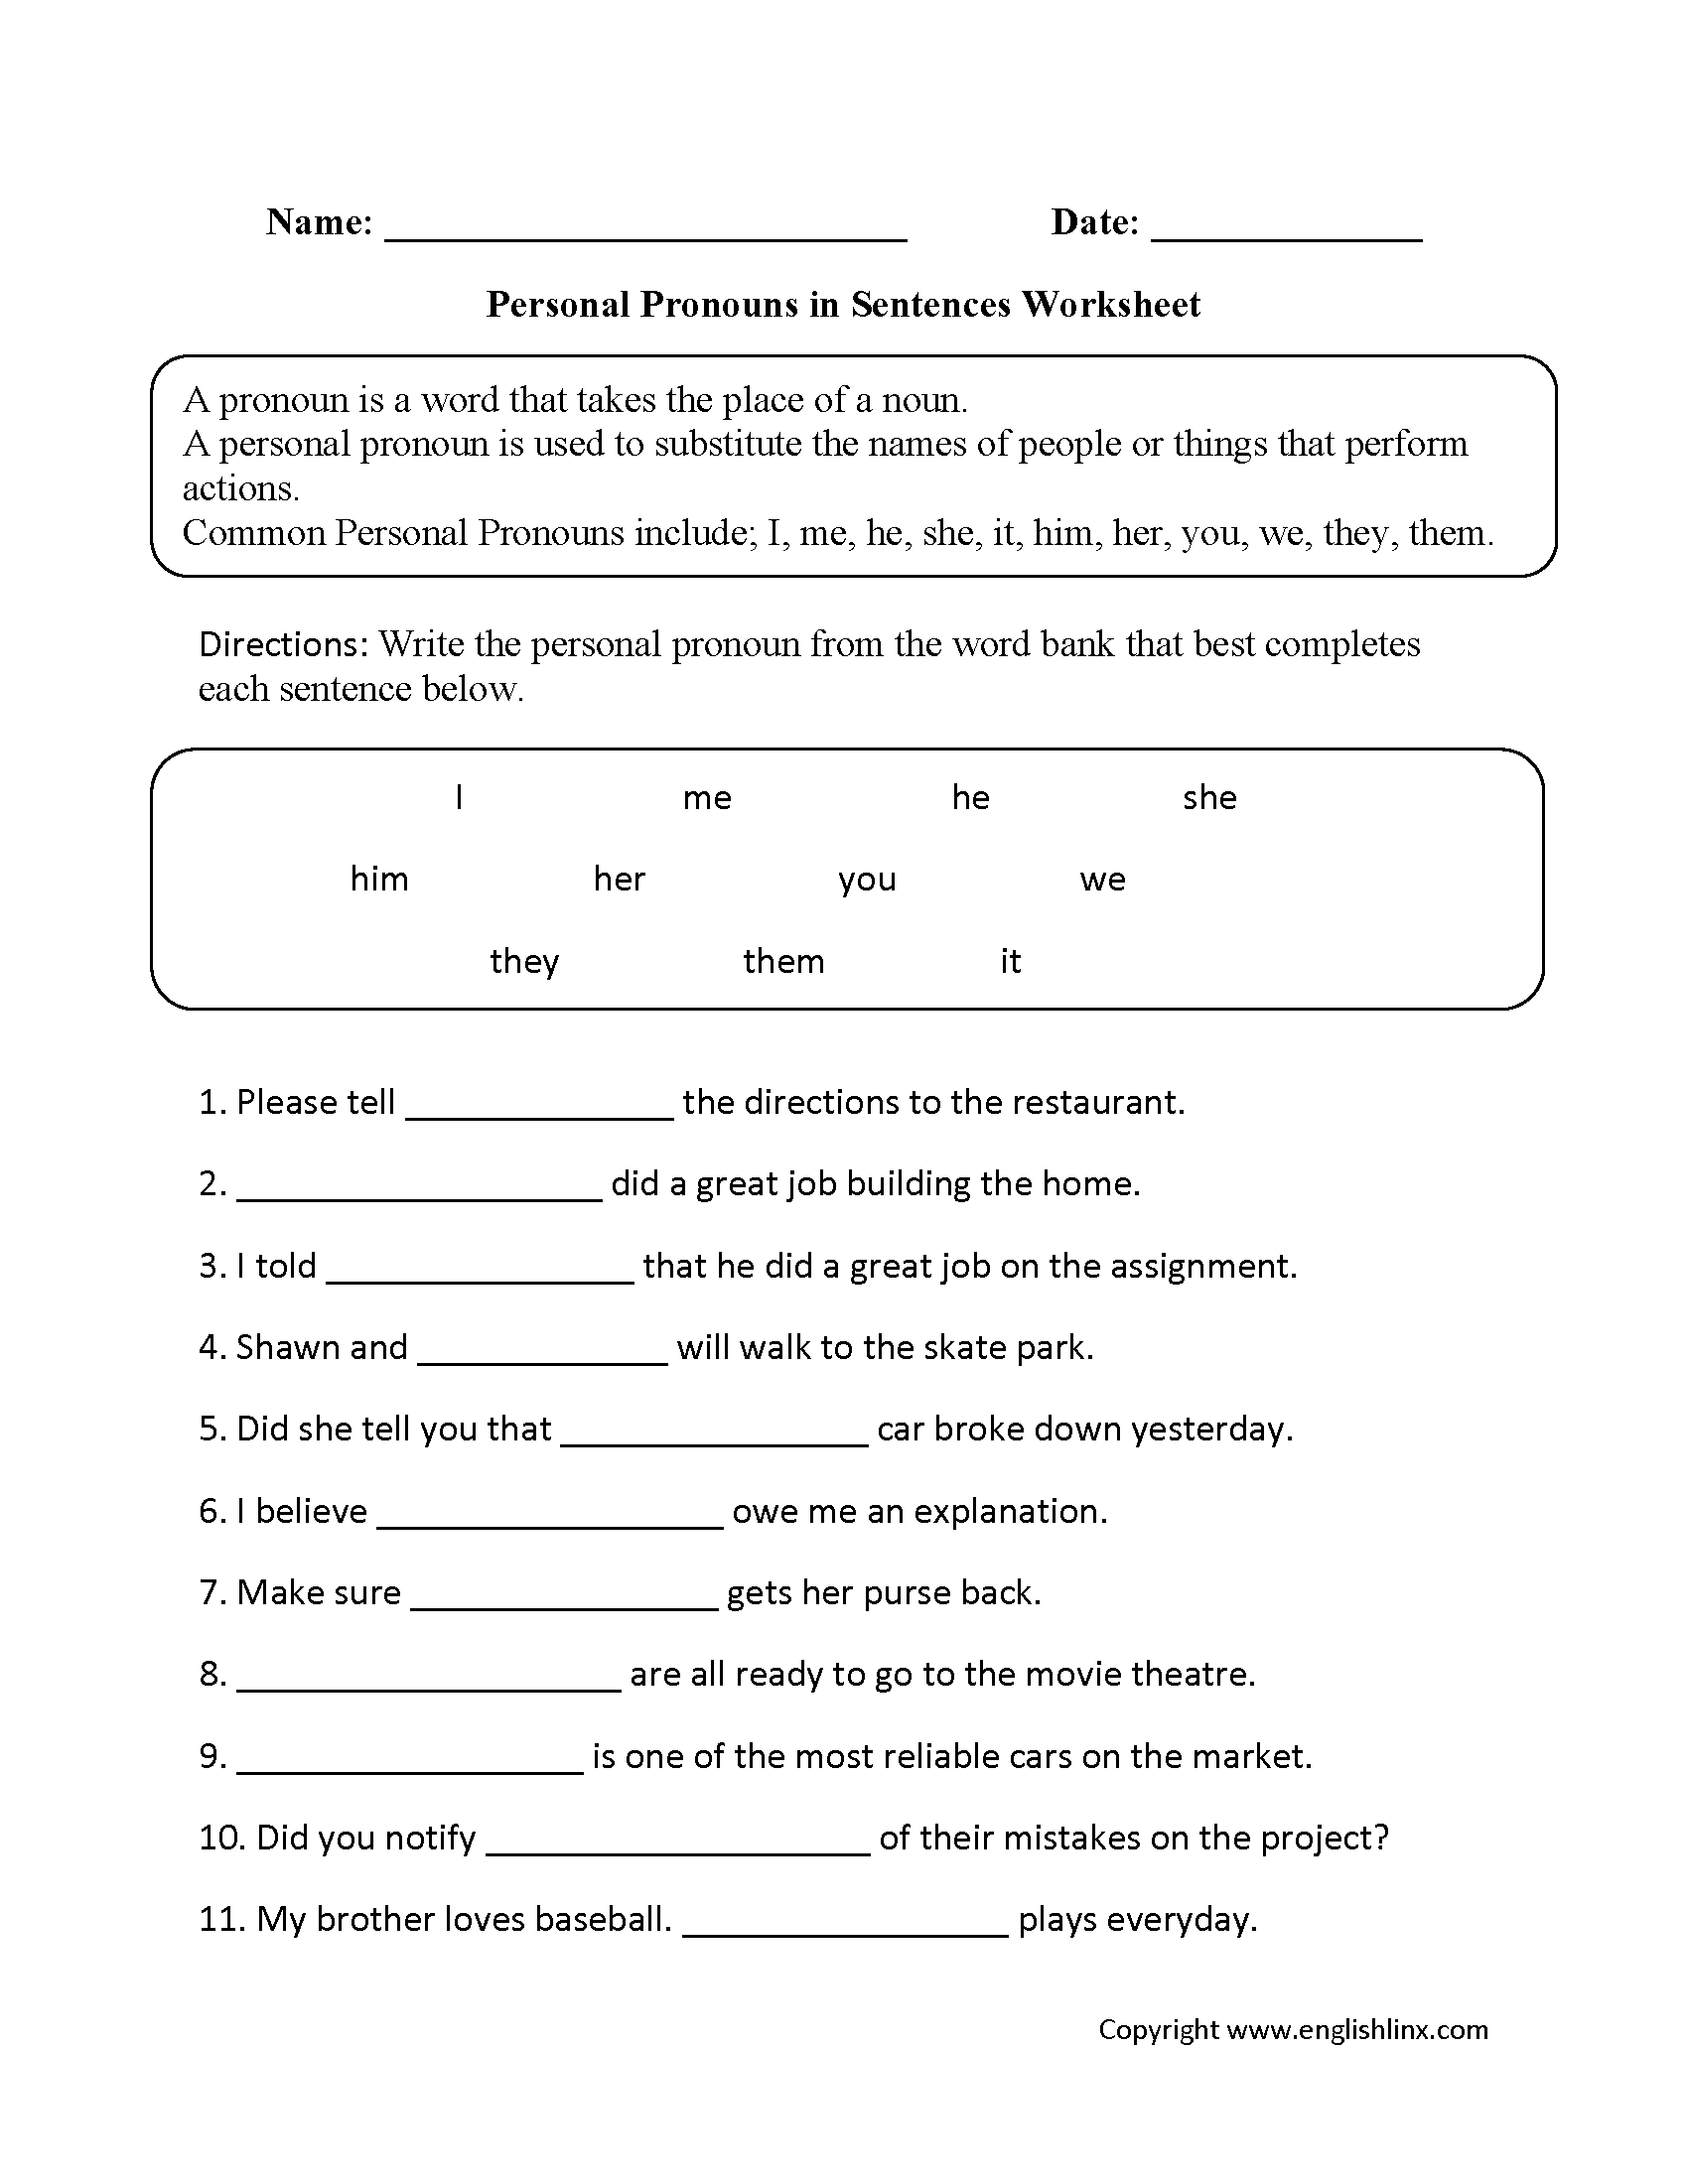 Personal Pronouns in Sentences Worksheets